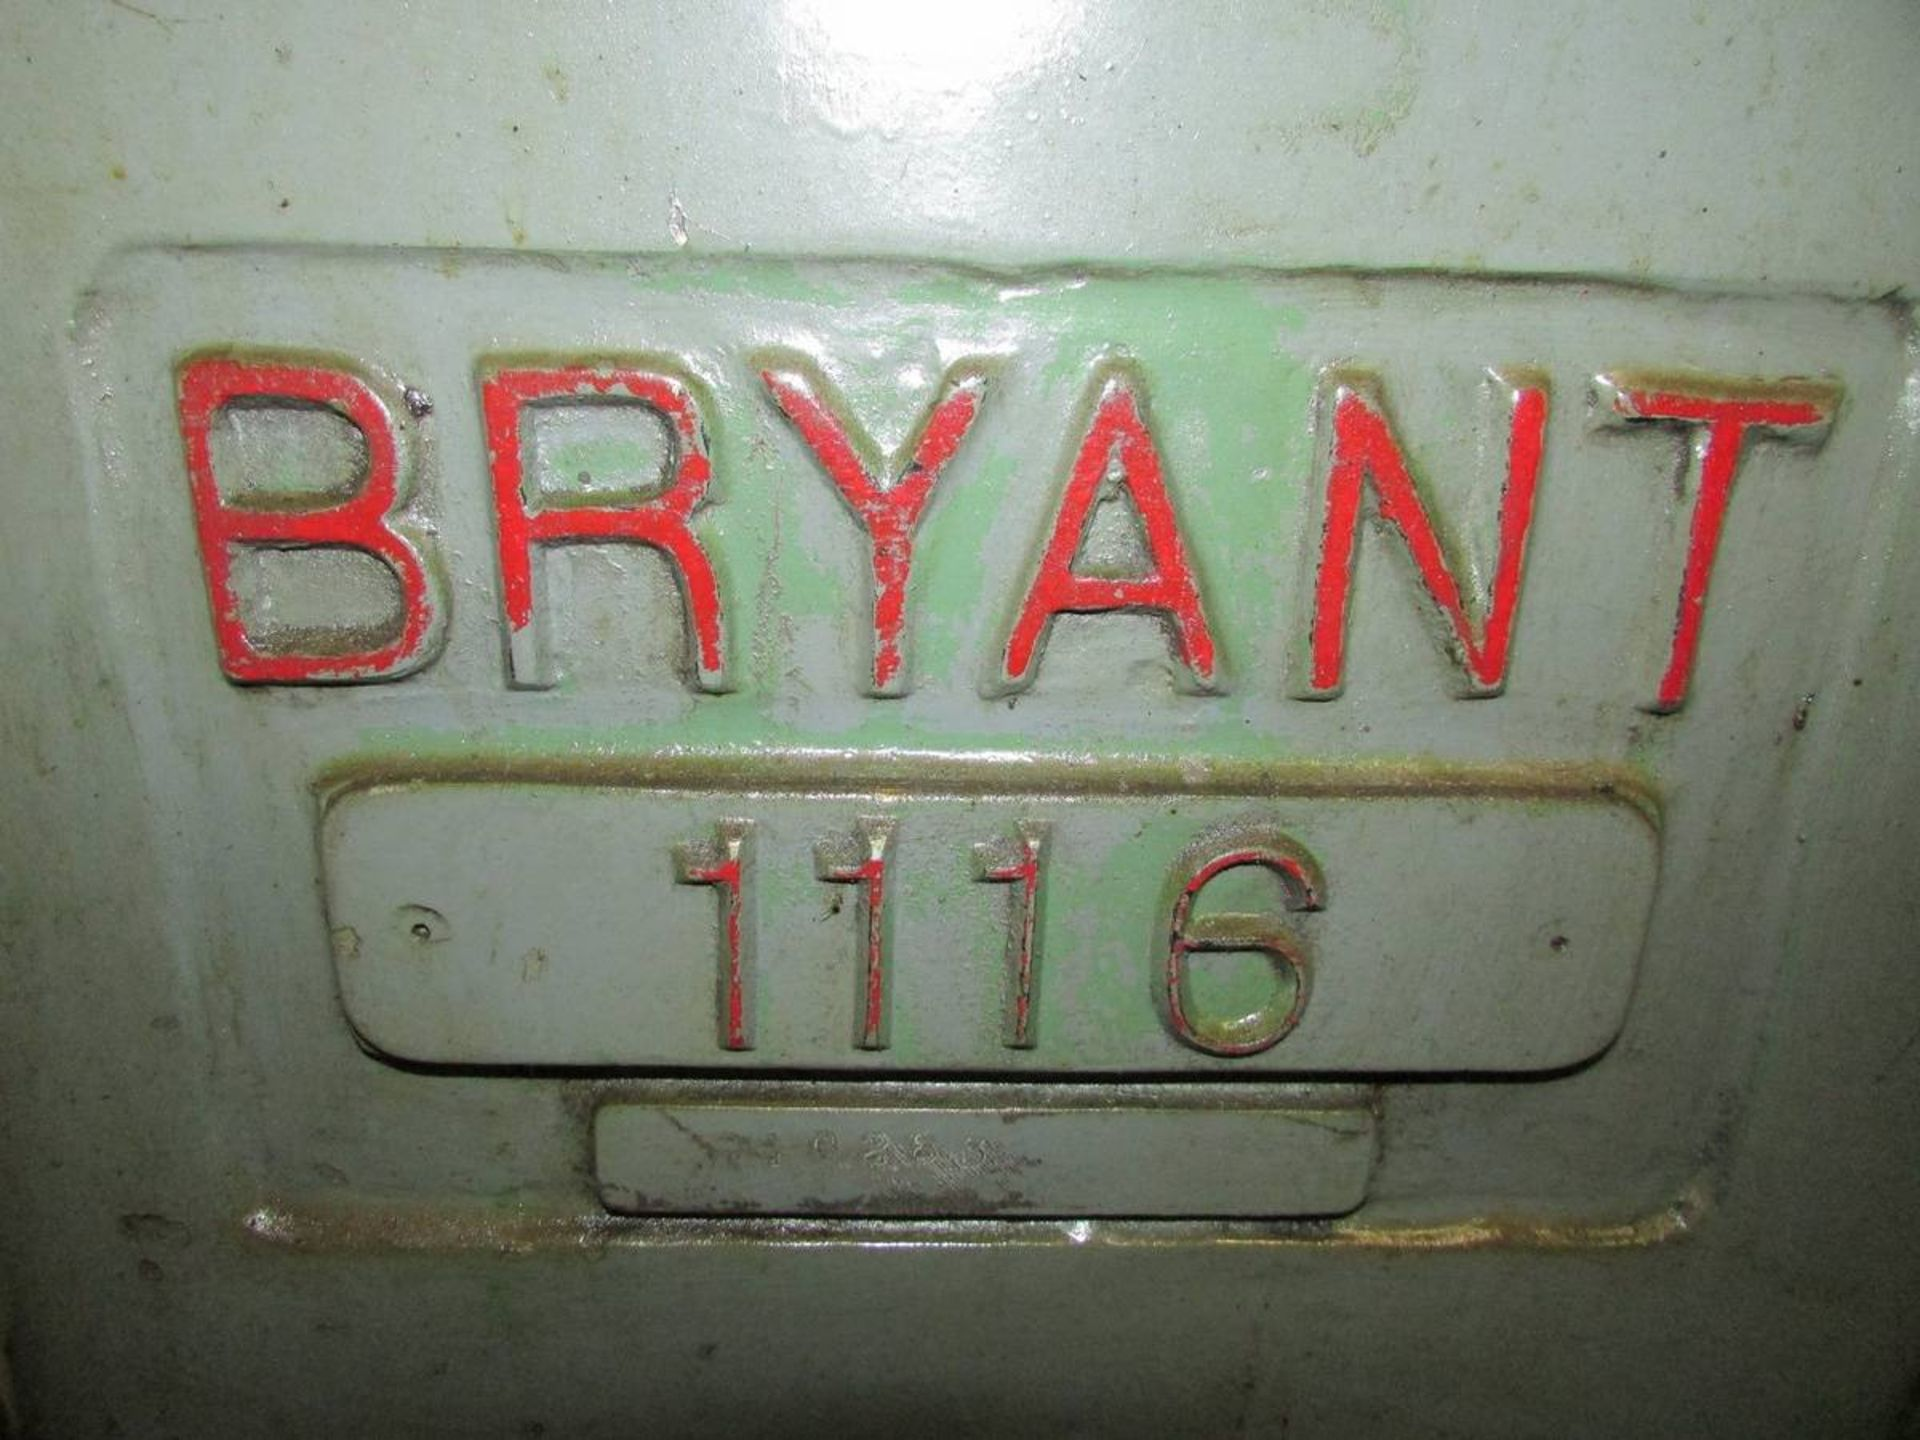 1981 Bryant 1116 ID Cylindrical Grinder - Image 20 of 20